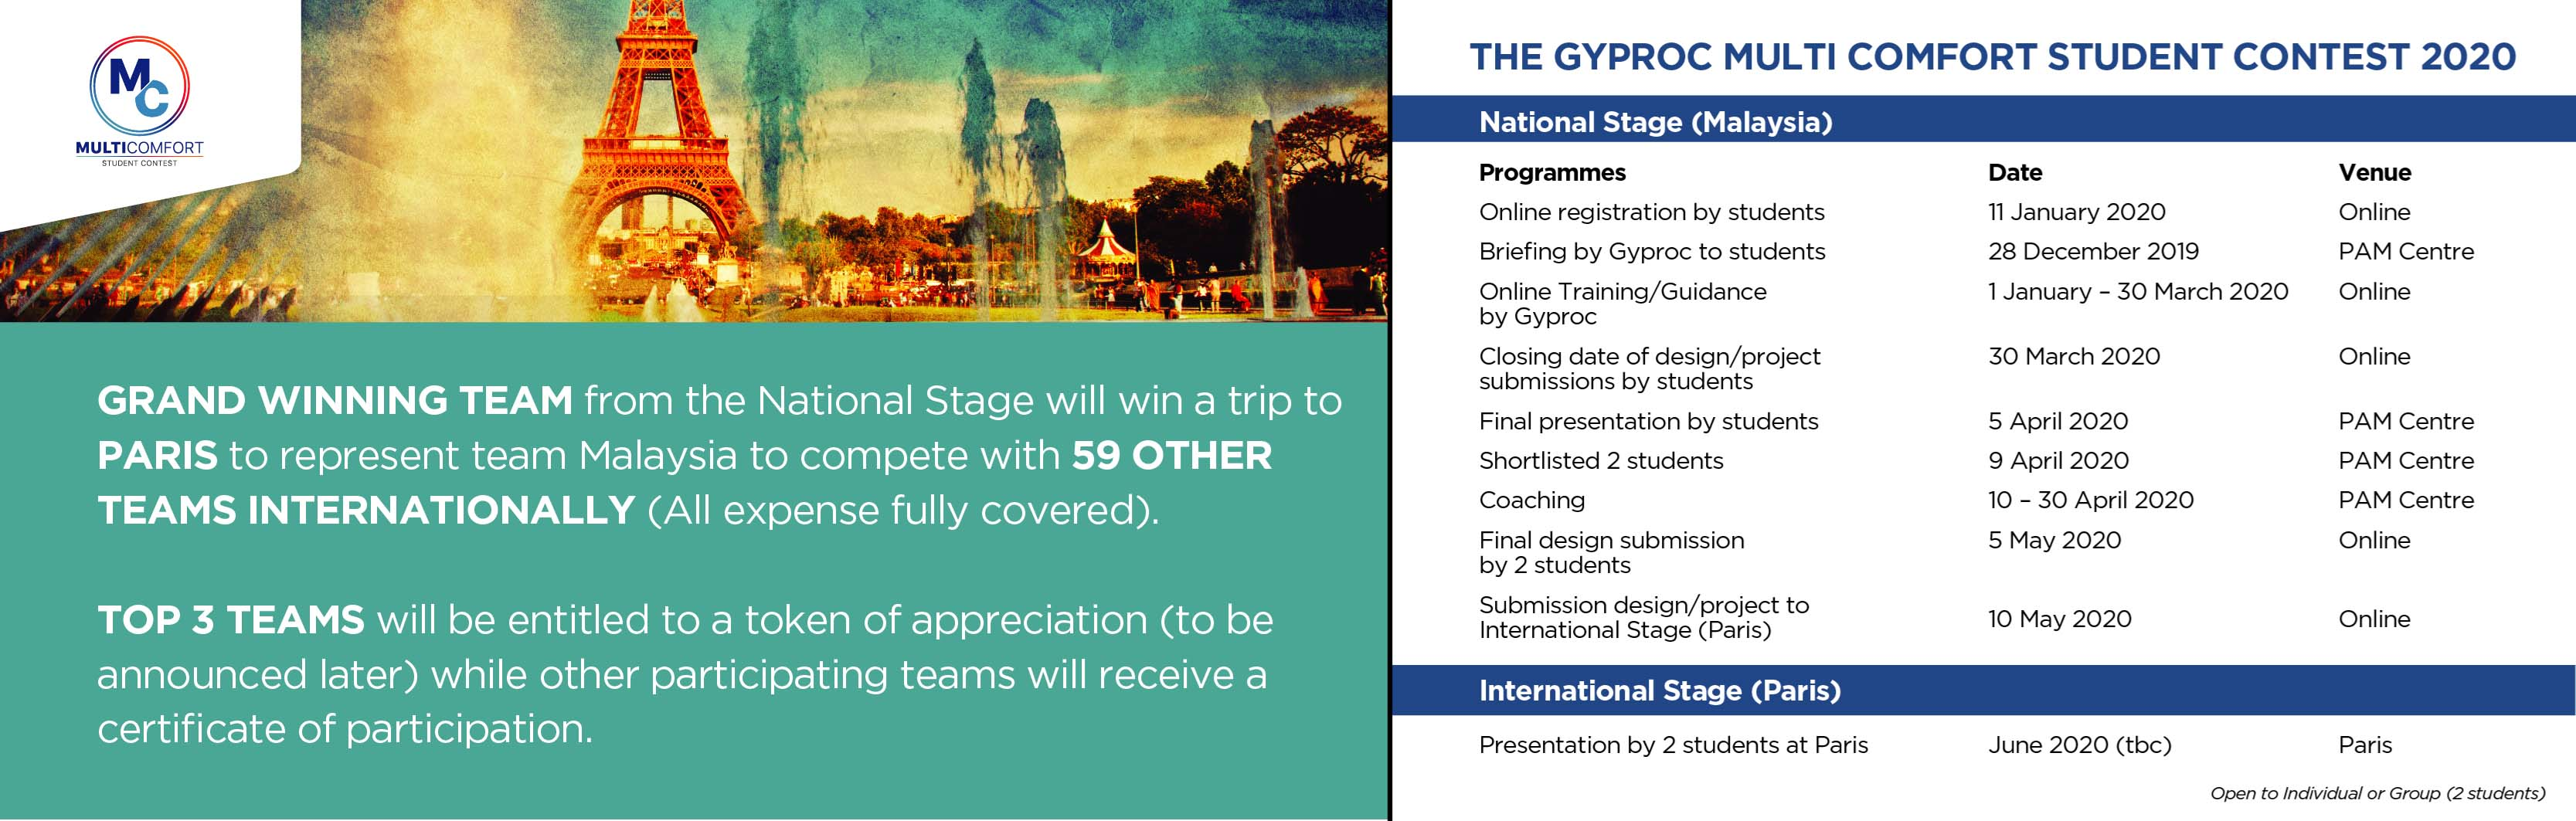 The Gyproc Multi Comfort Student Contest 2020